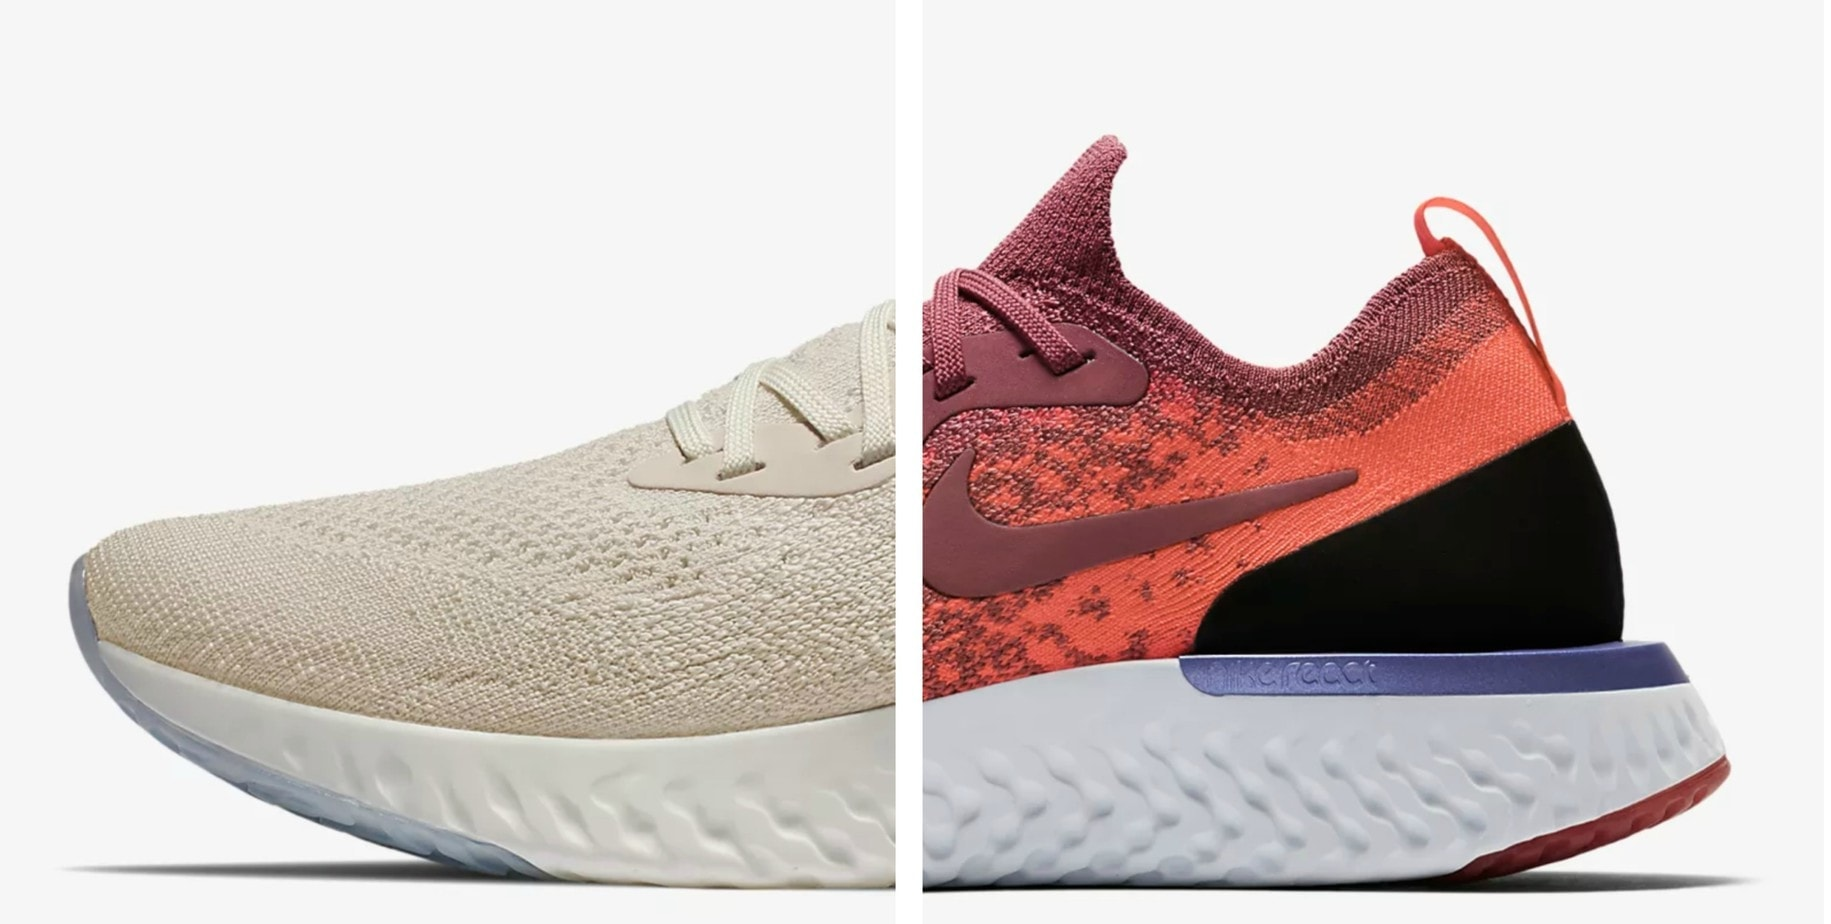 2f59f7787536e The Nike Epic React Flyknit is just getting started. Already a hit among  runners and sneakerheads alike